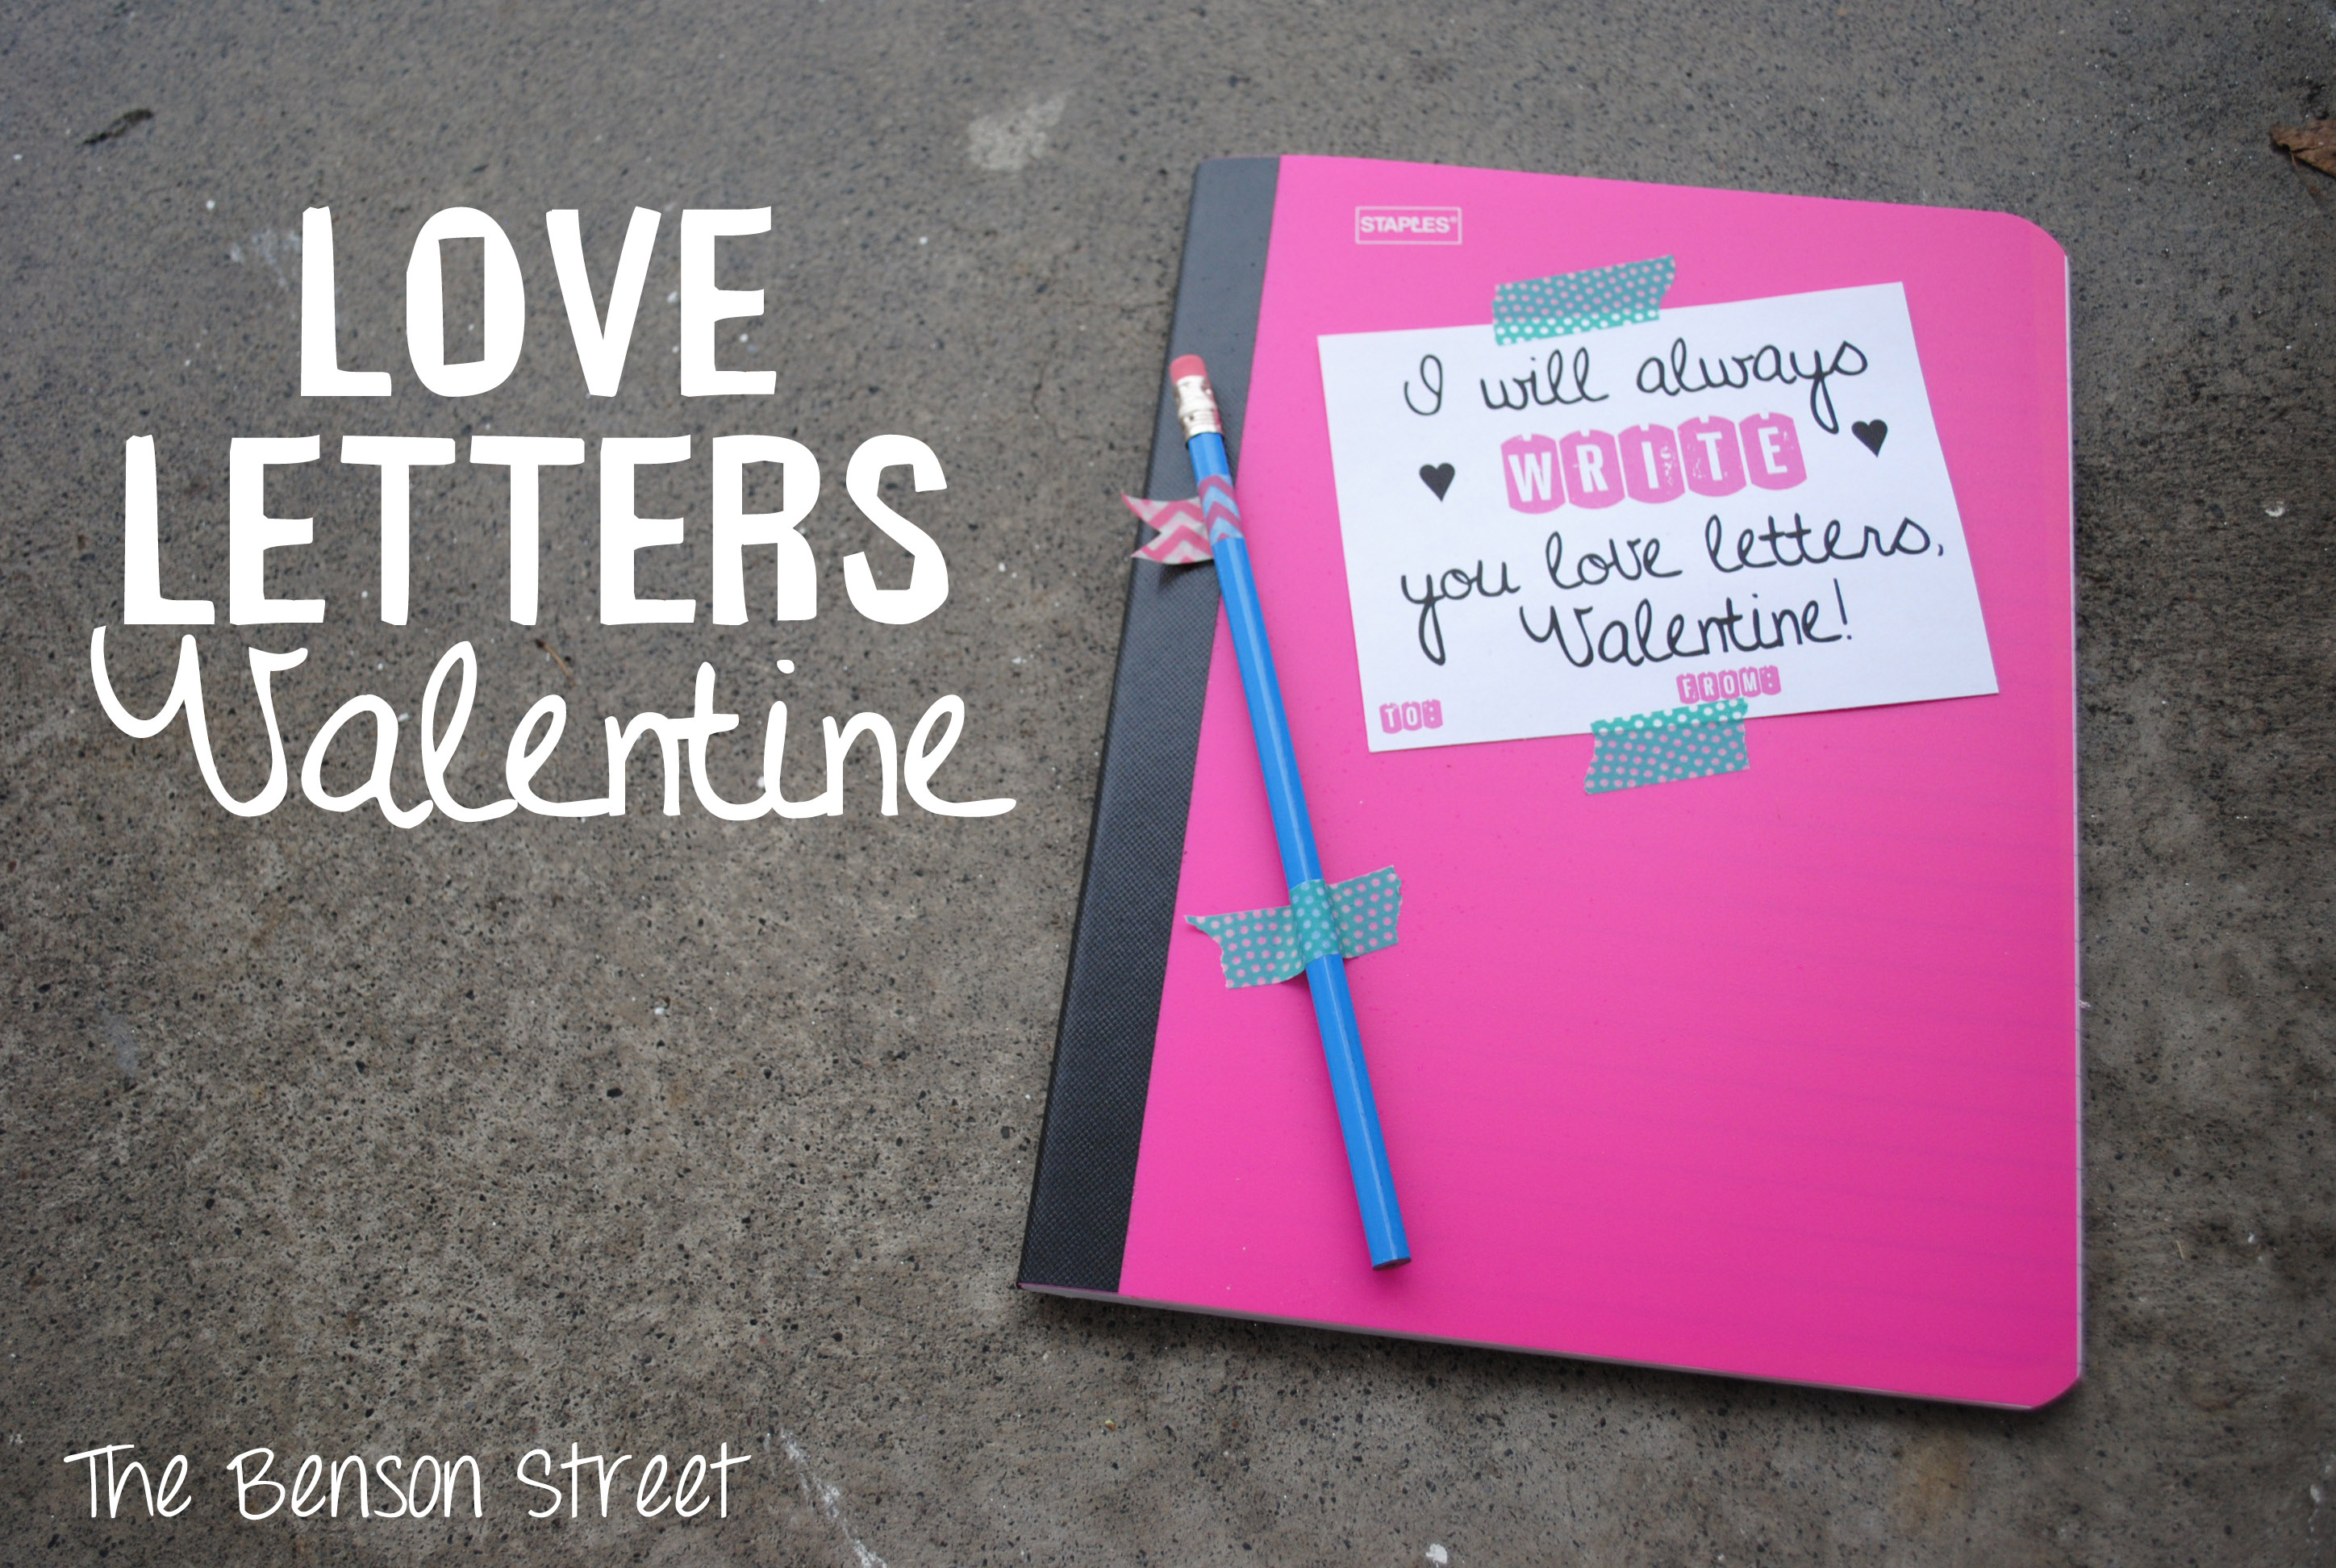 Love Letters Valentine at The Benson Street6